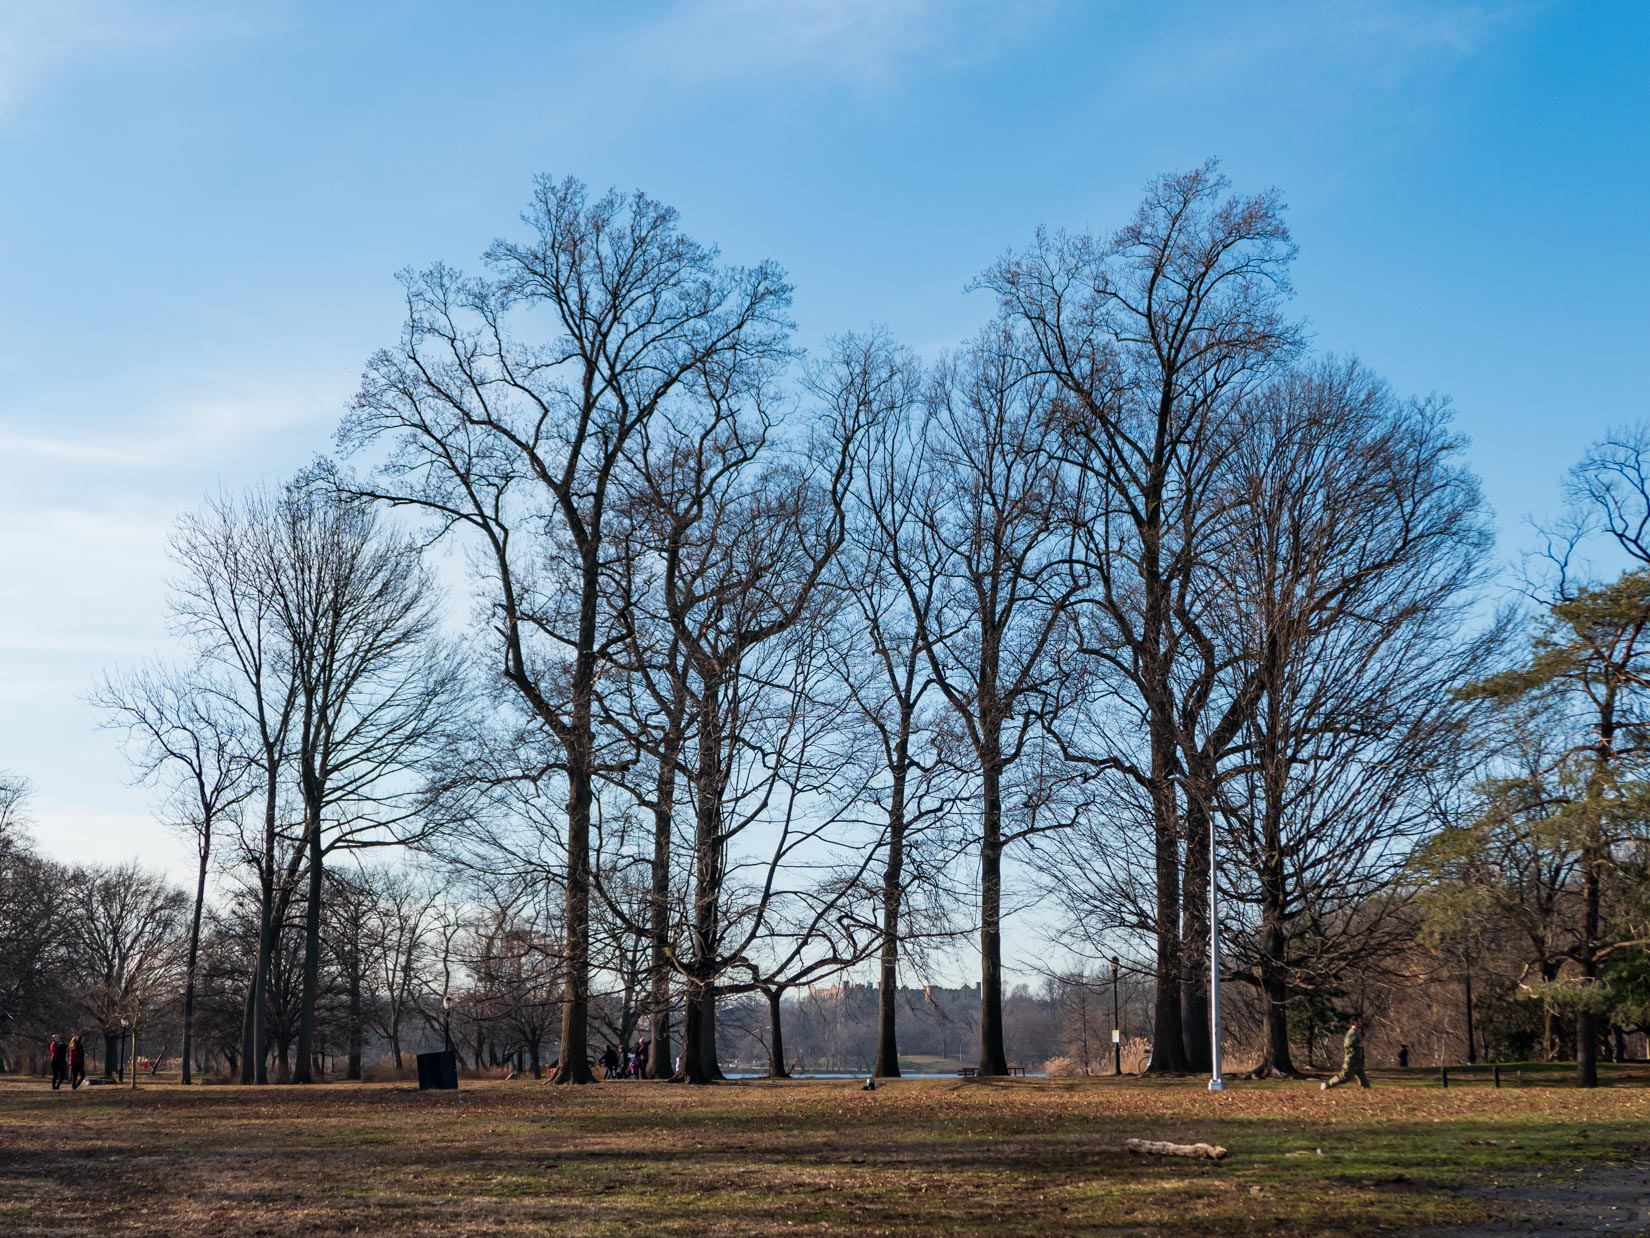 Park Trees and Landscape